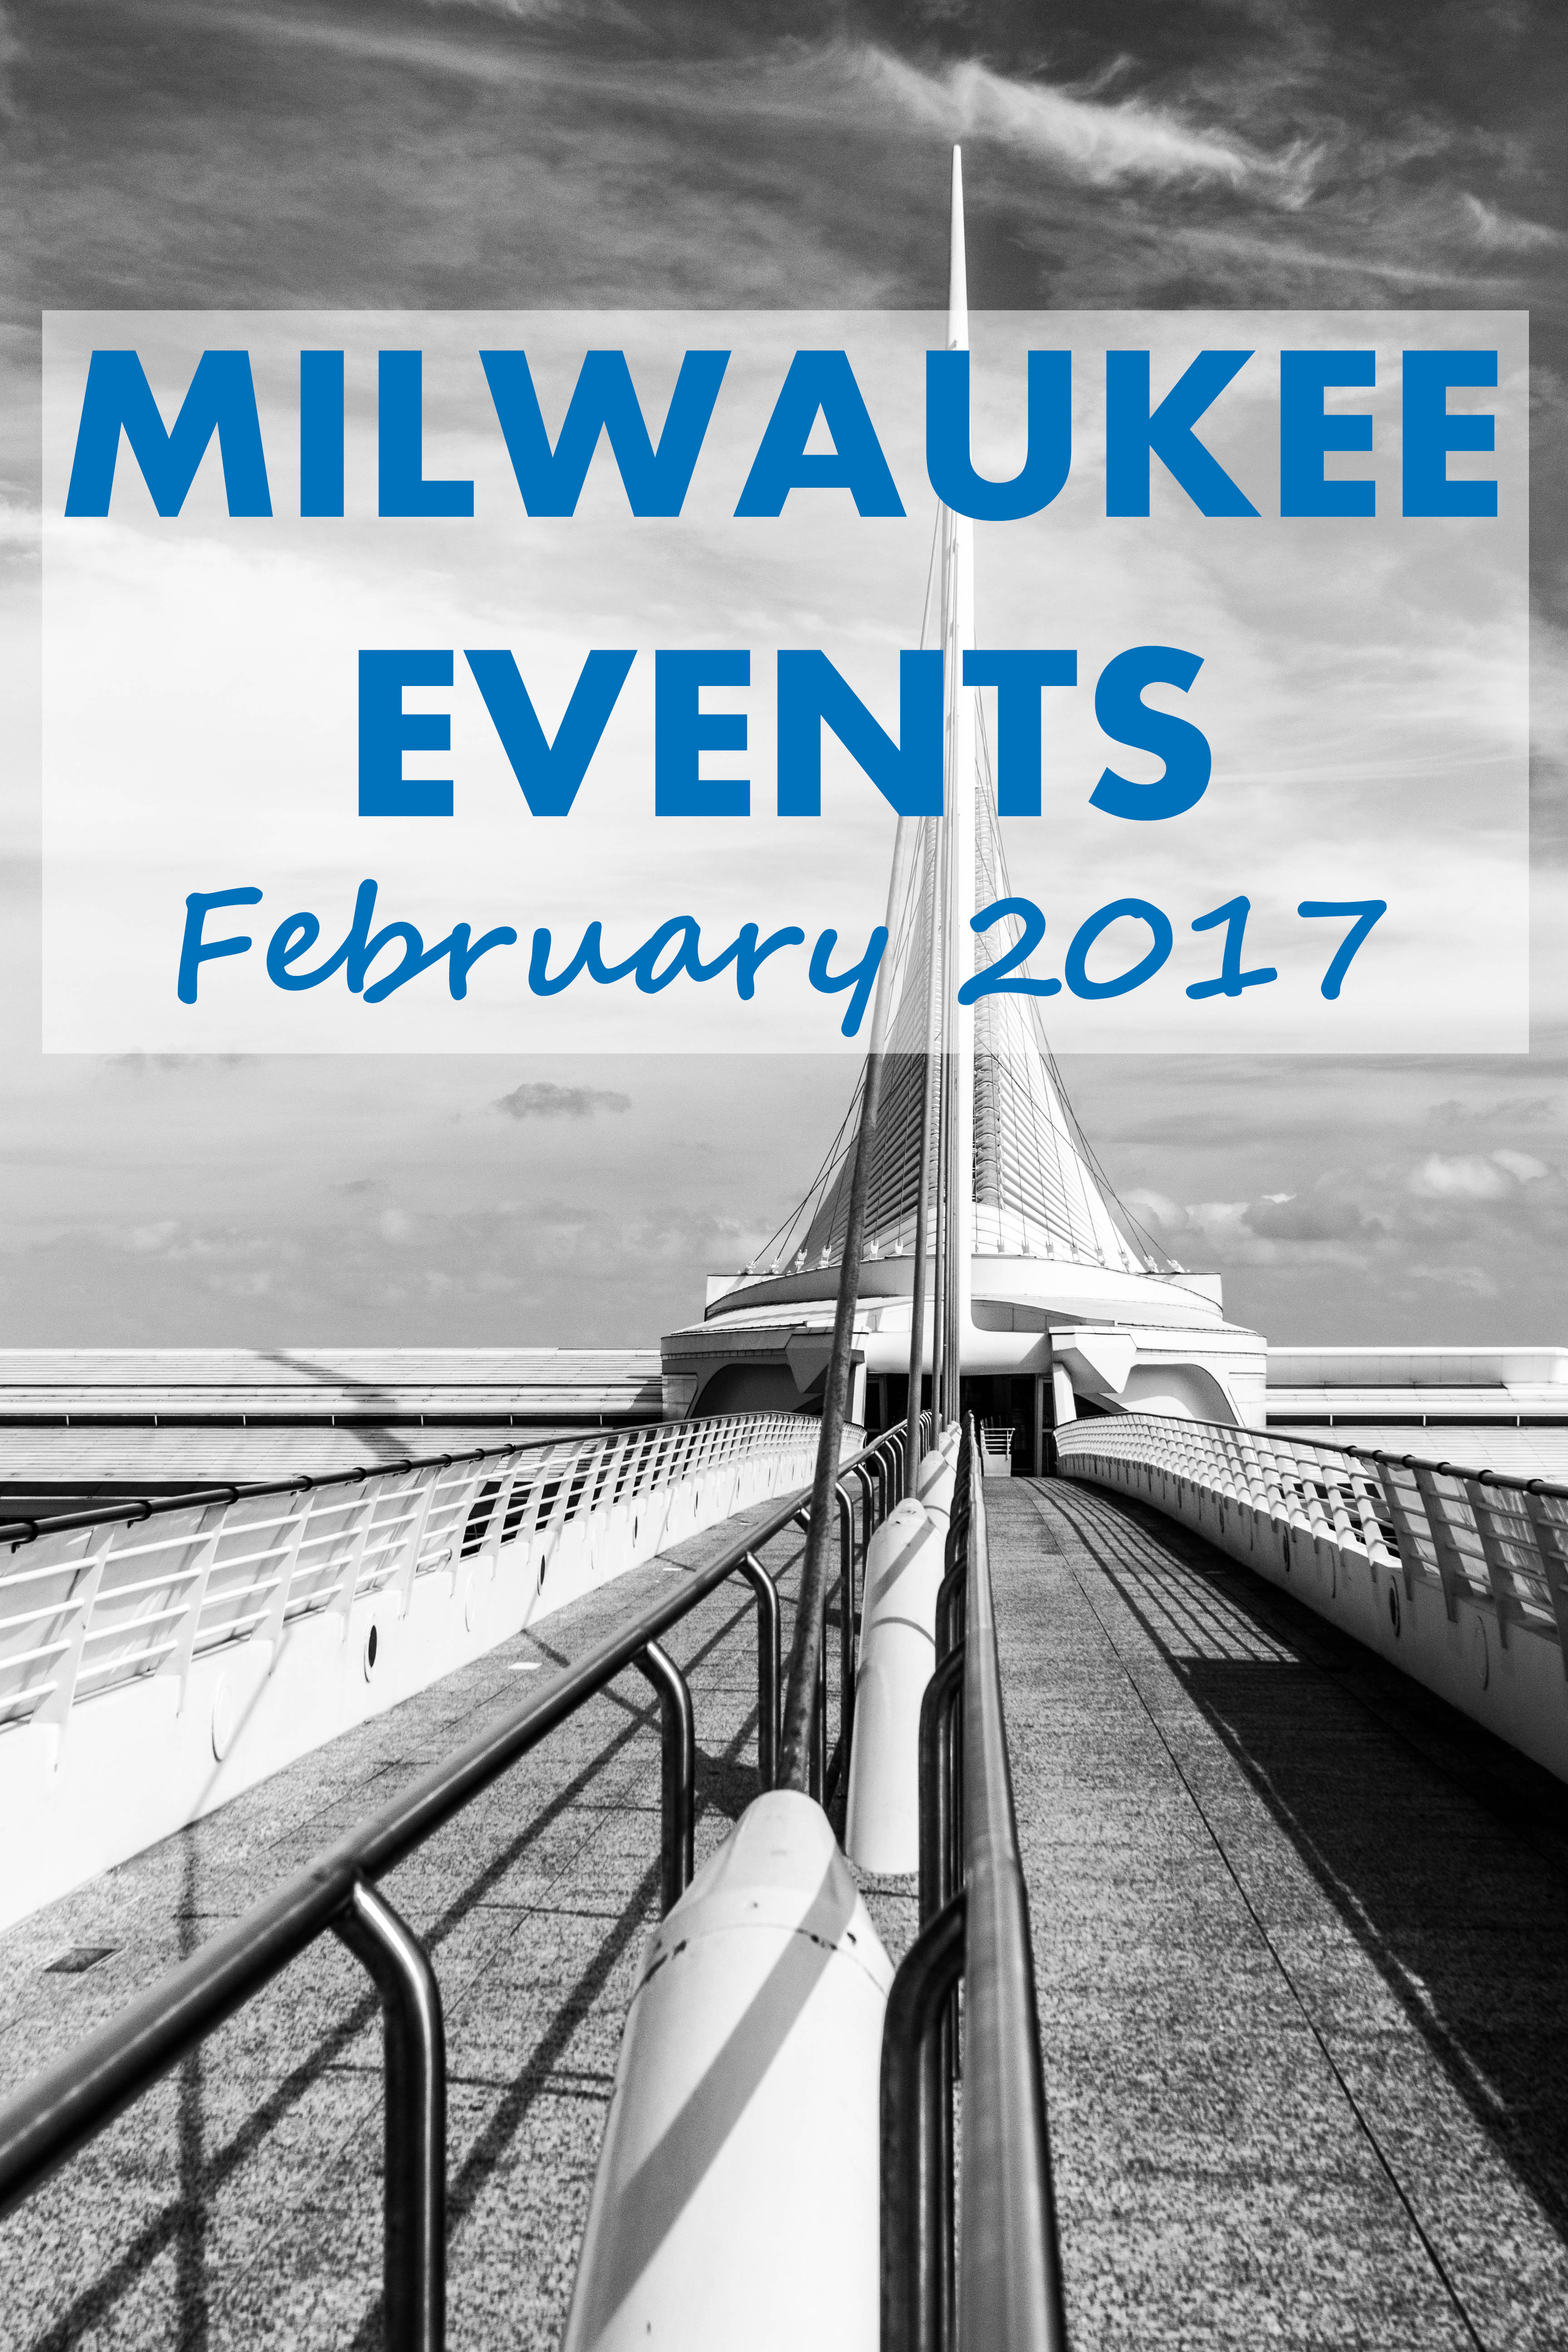 Milwaukee Events - February 2017 | https://www.roseclearfield.com